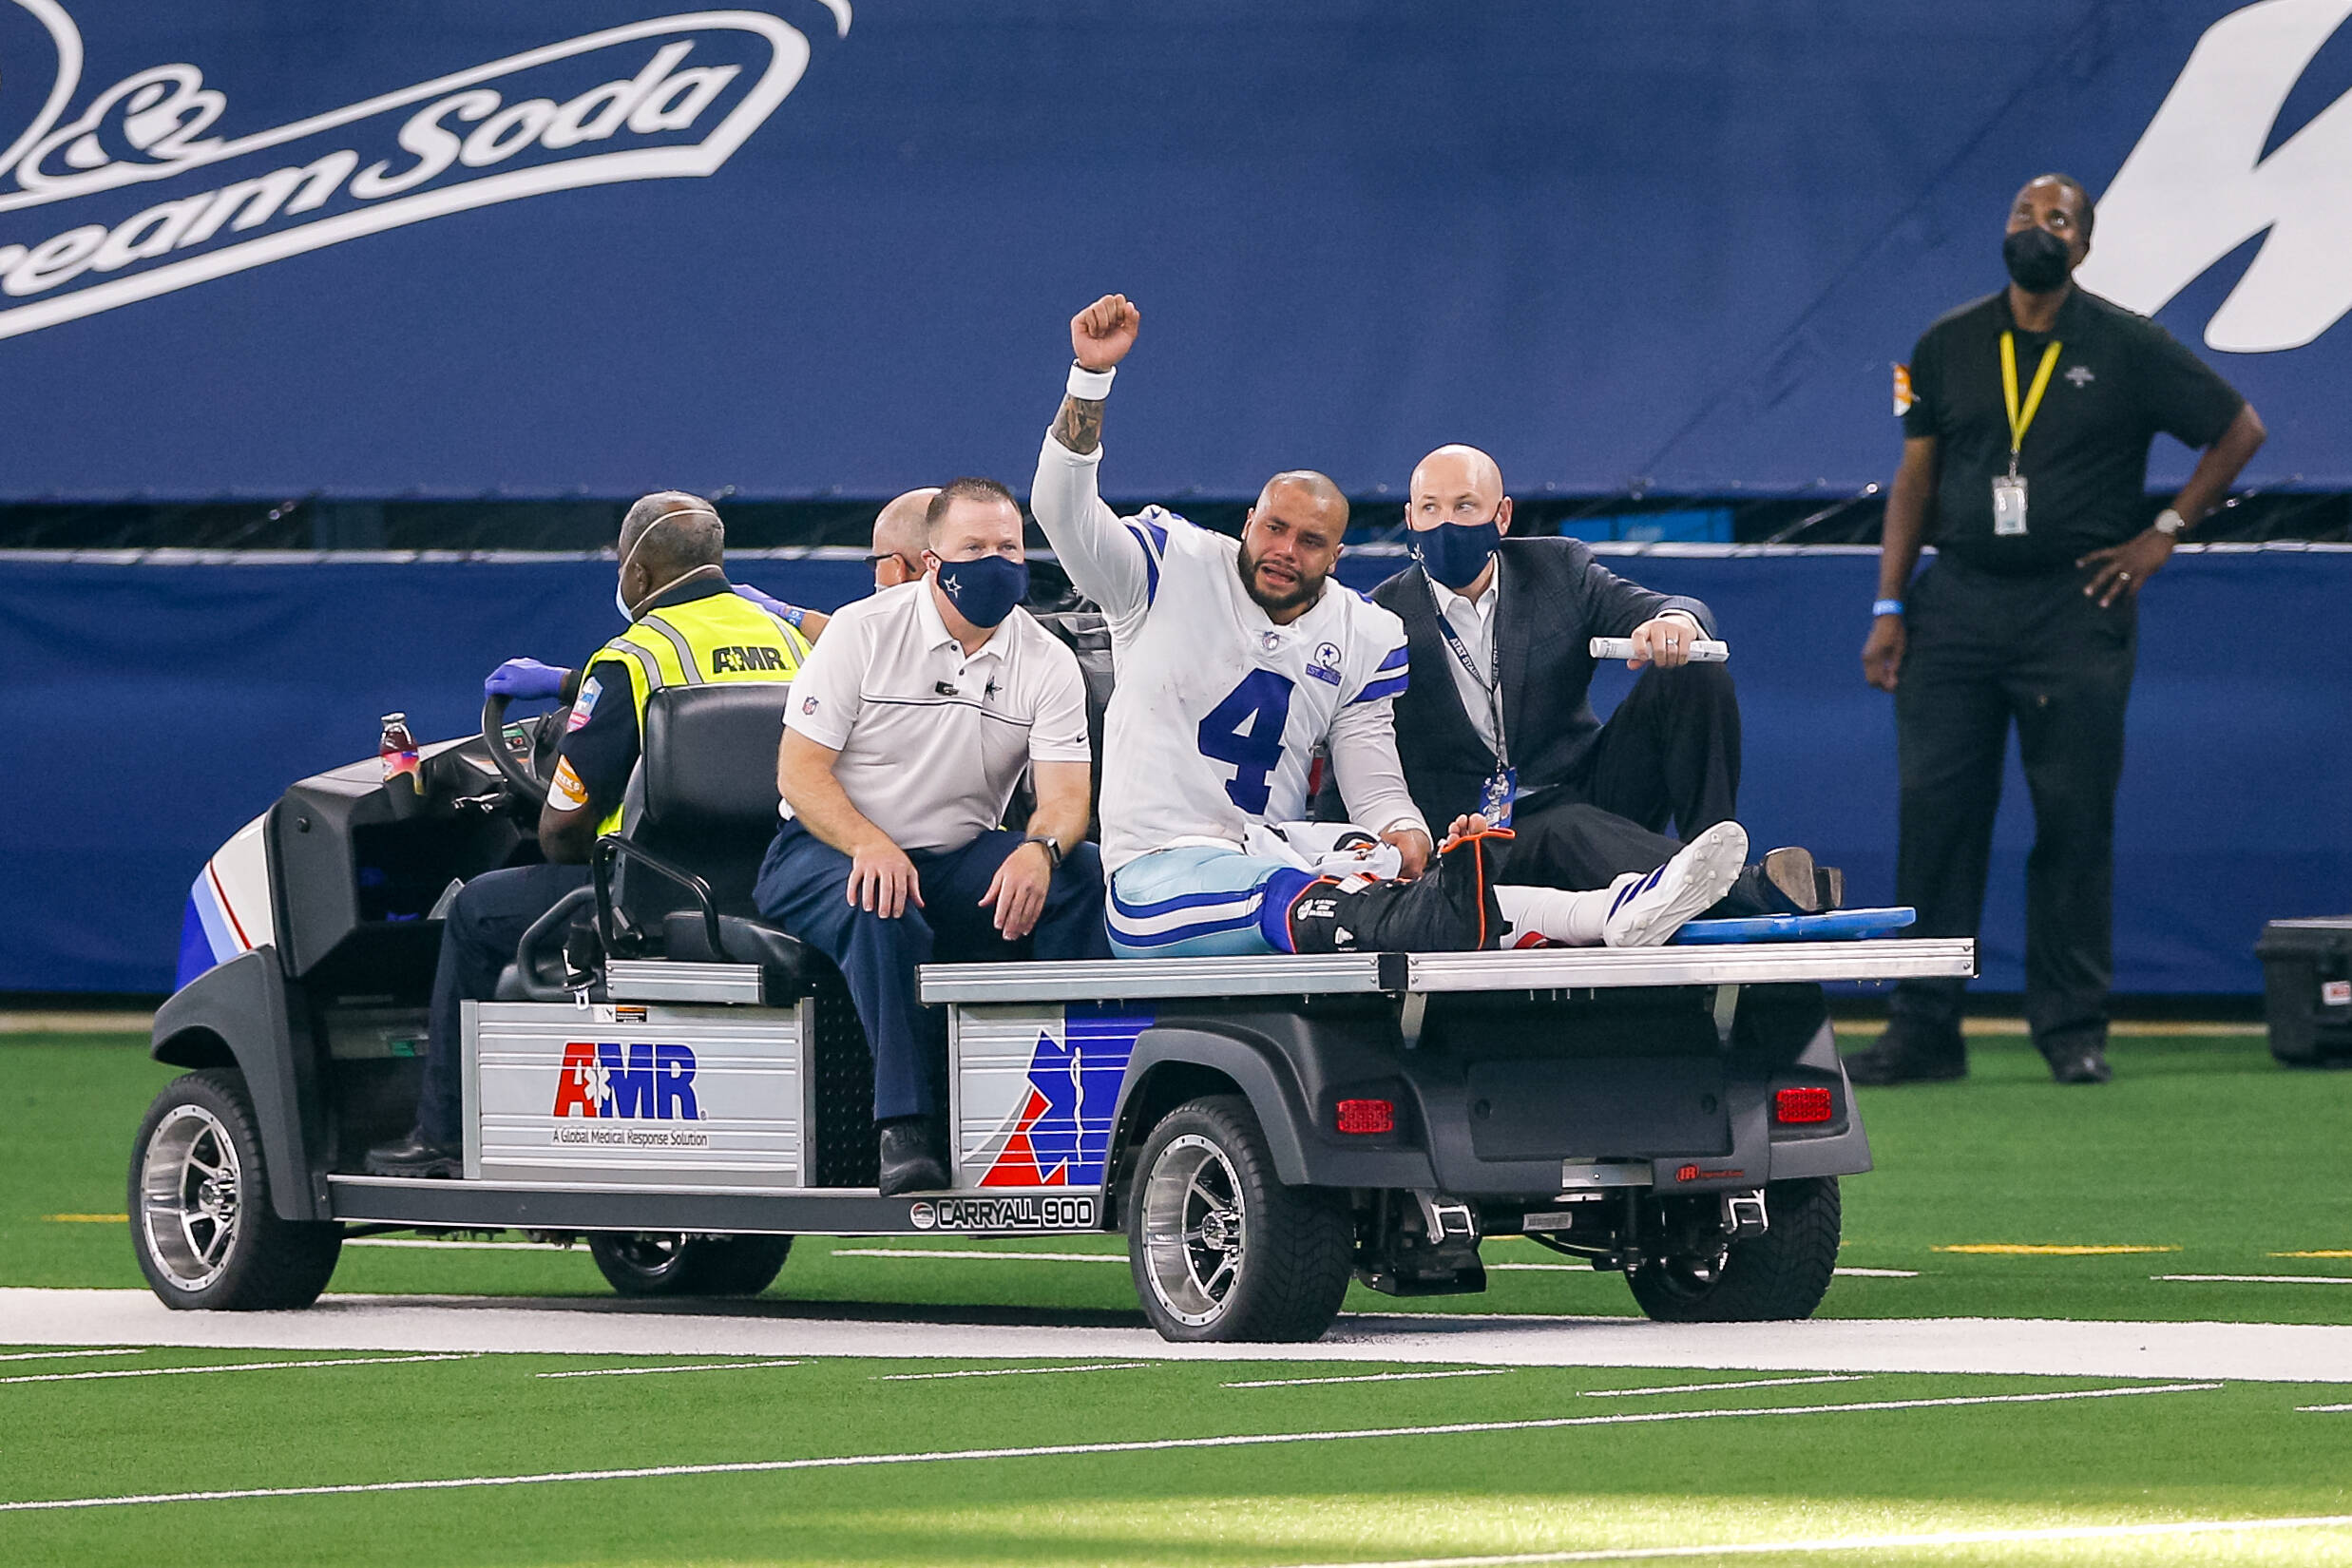 ARLINGTON, TX - OCTOBER 11: Dallas Cowboys Quarterback Dak Prescott (4) is carted off the field after suffering a leg i